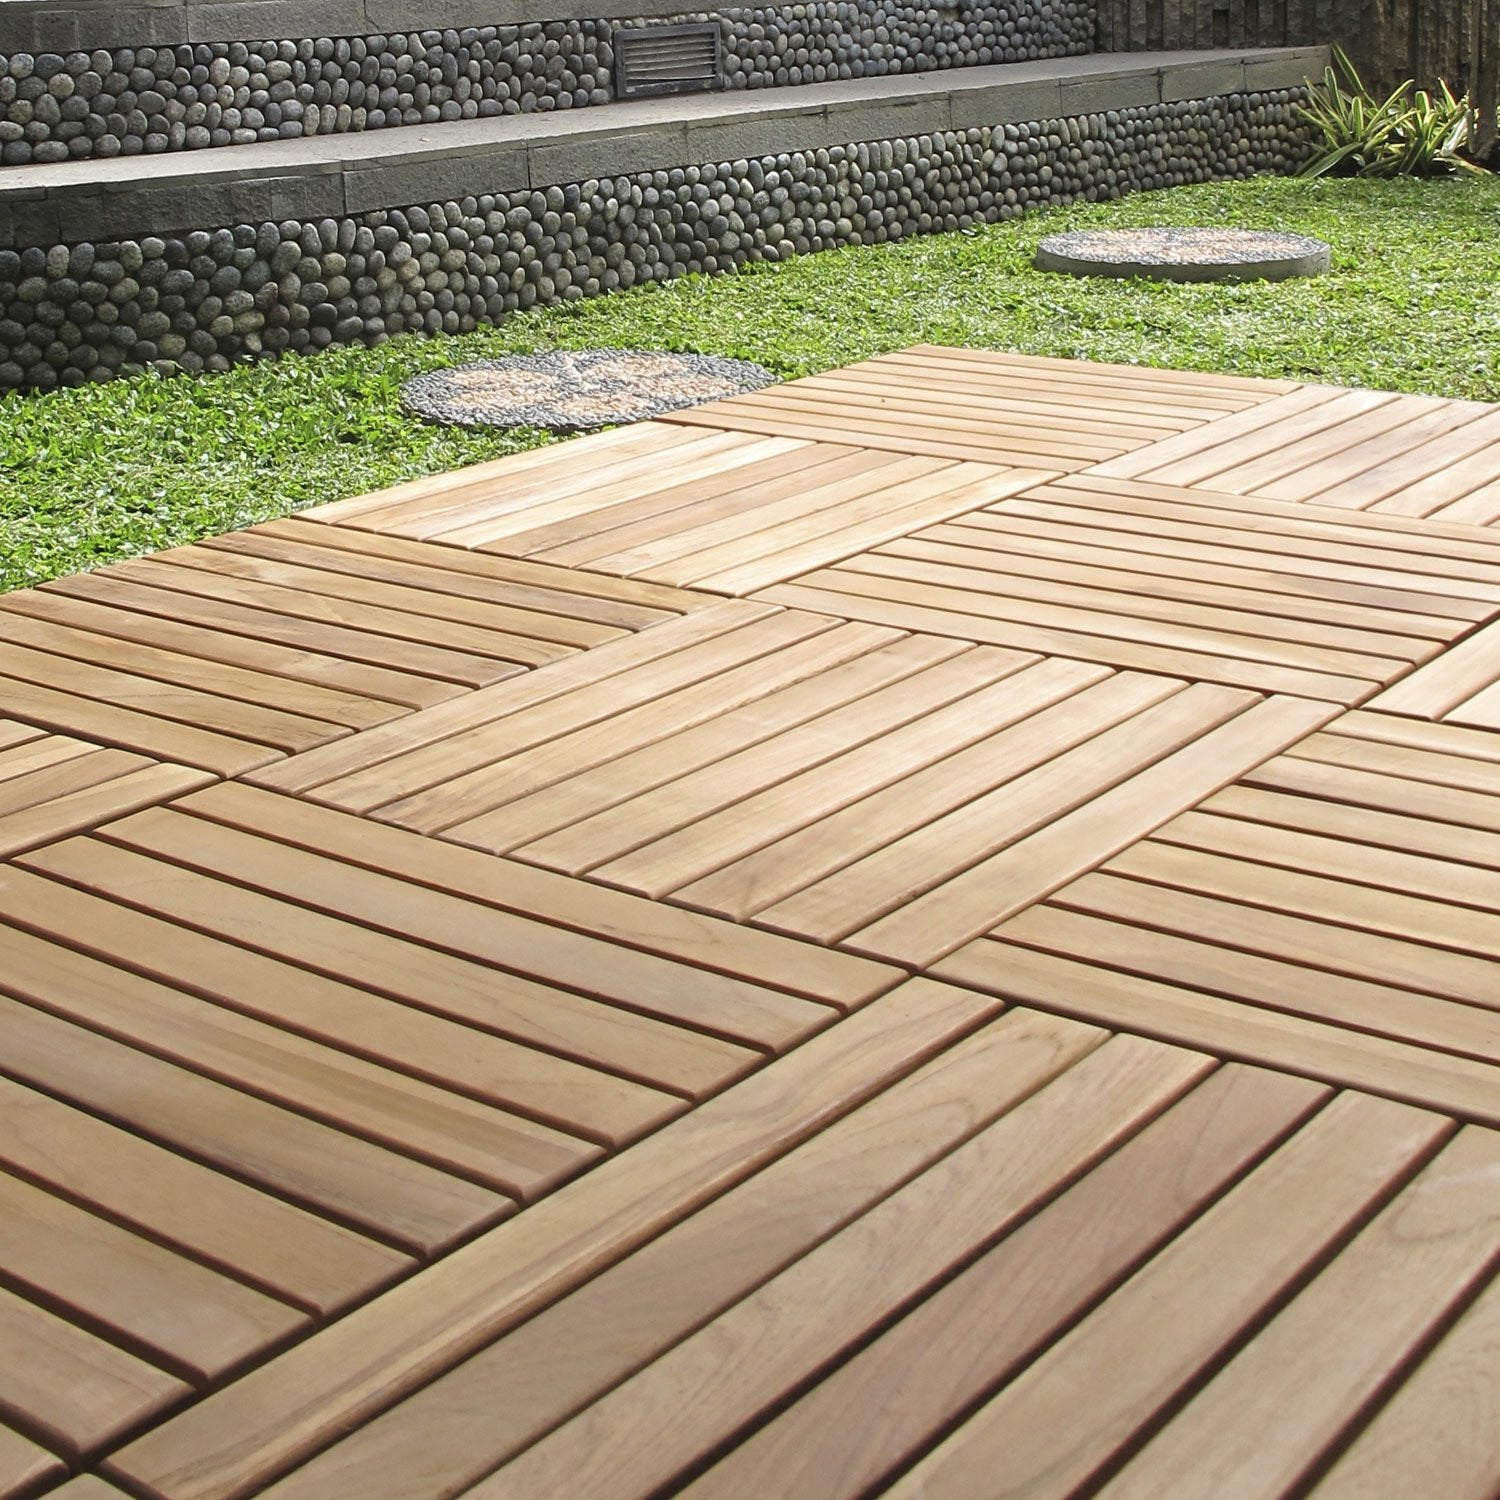 Dalle clipsable bois marron naturel miel x for Terrasse en dalle bois